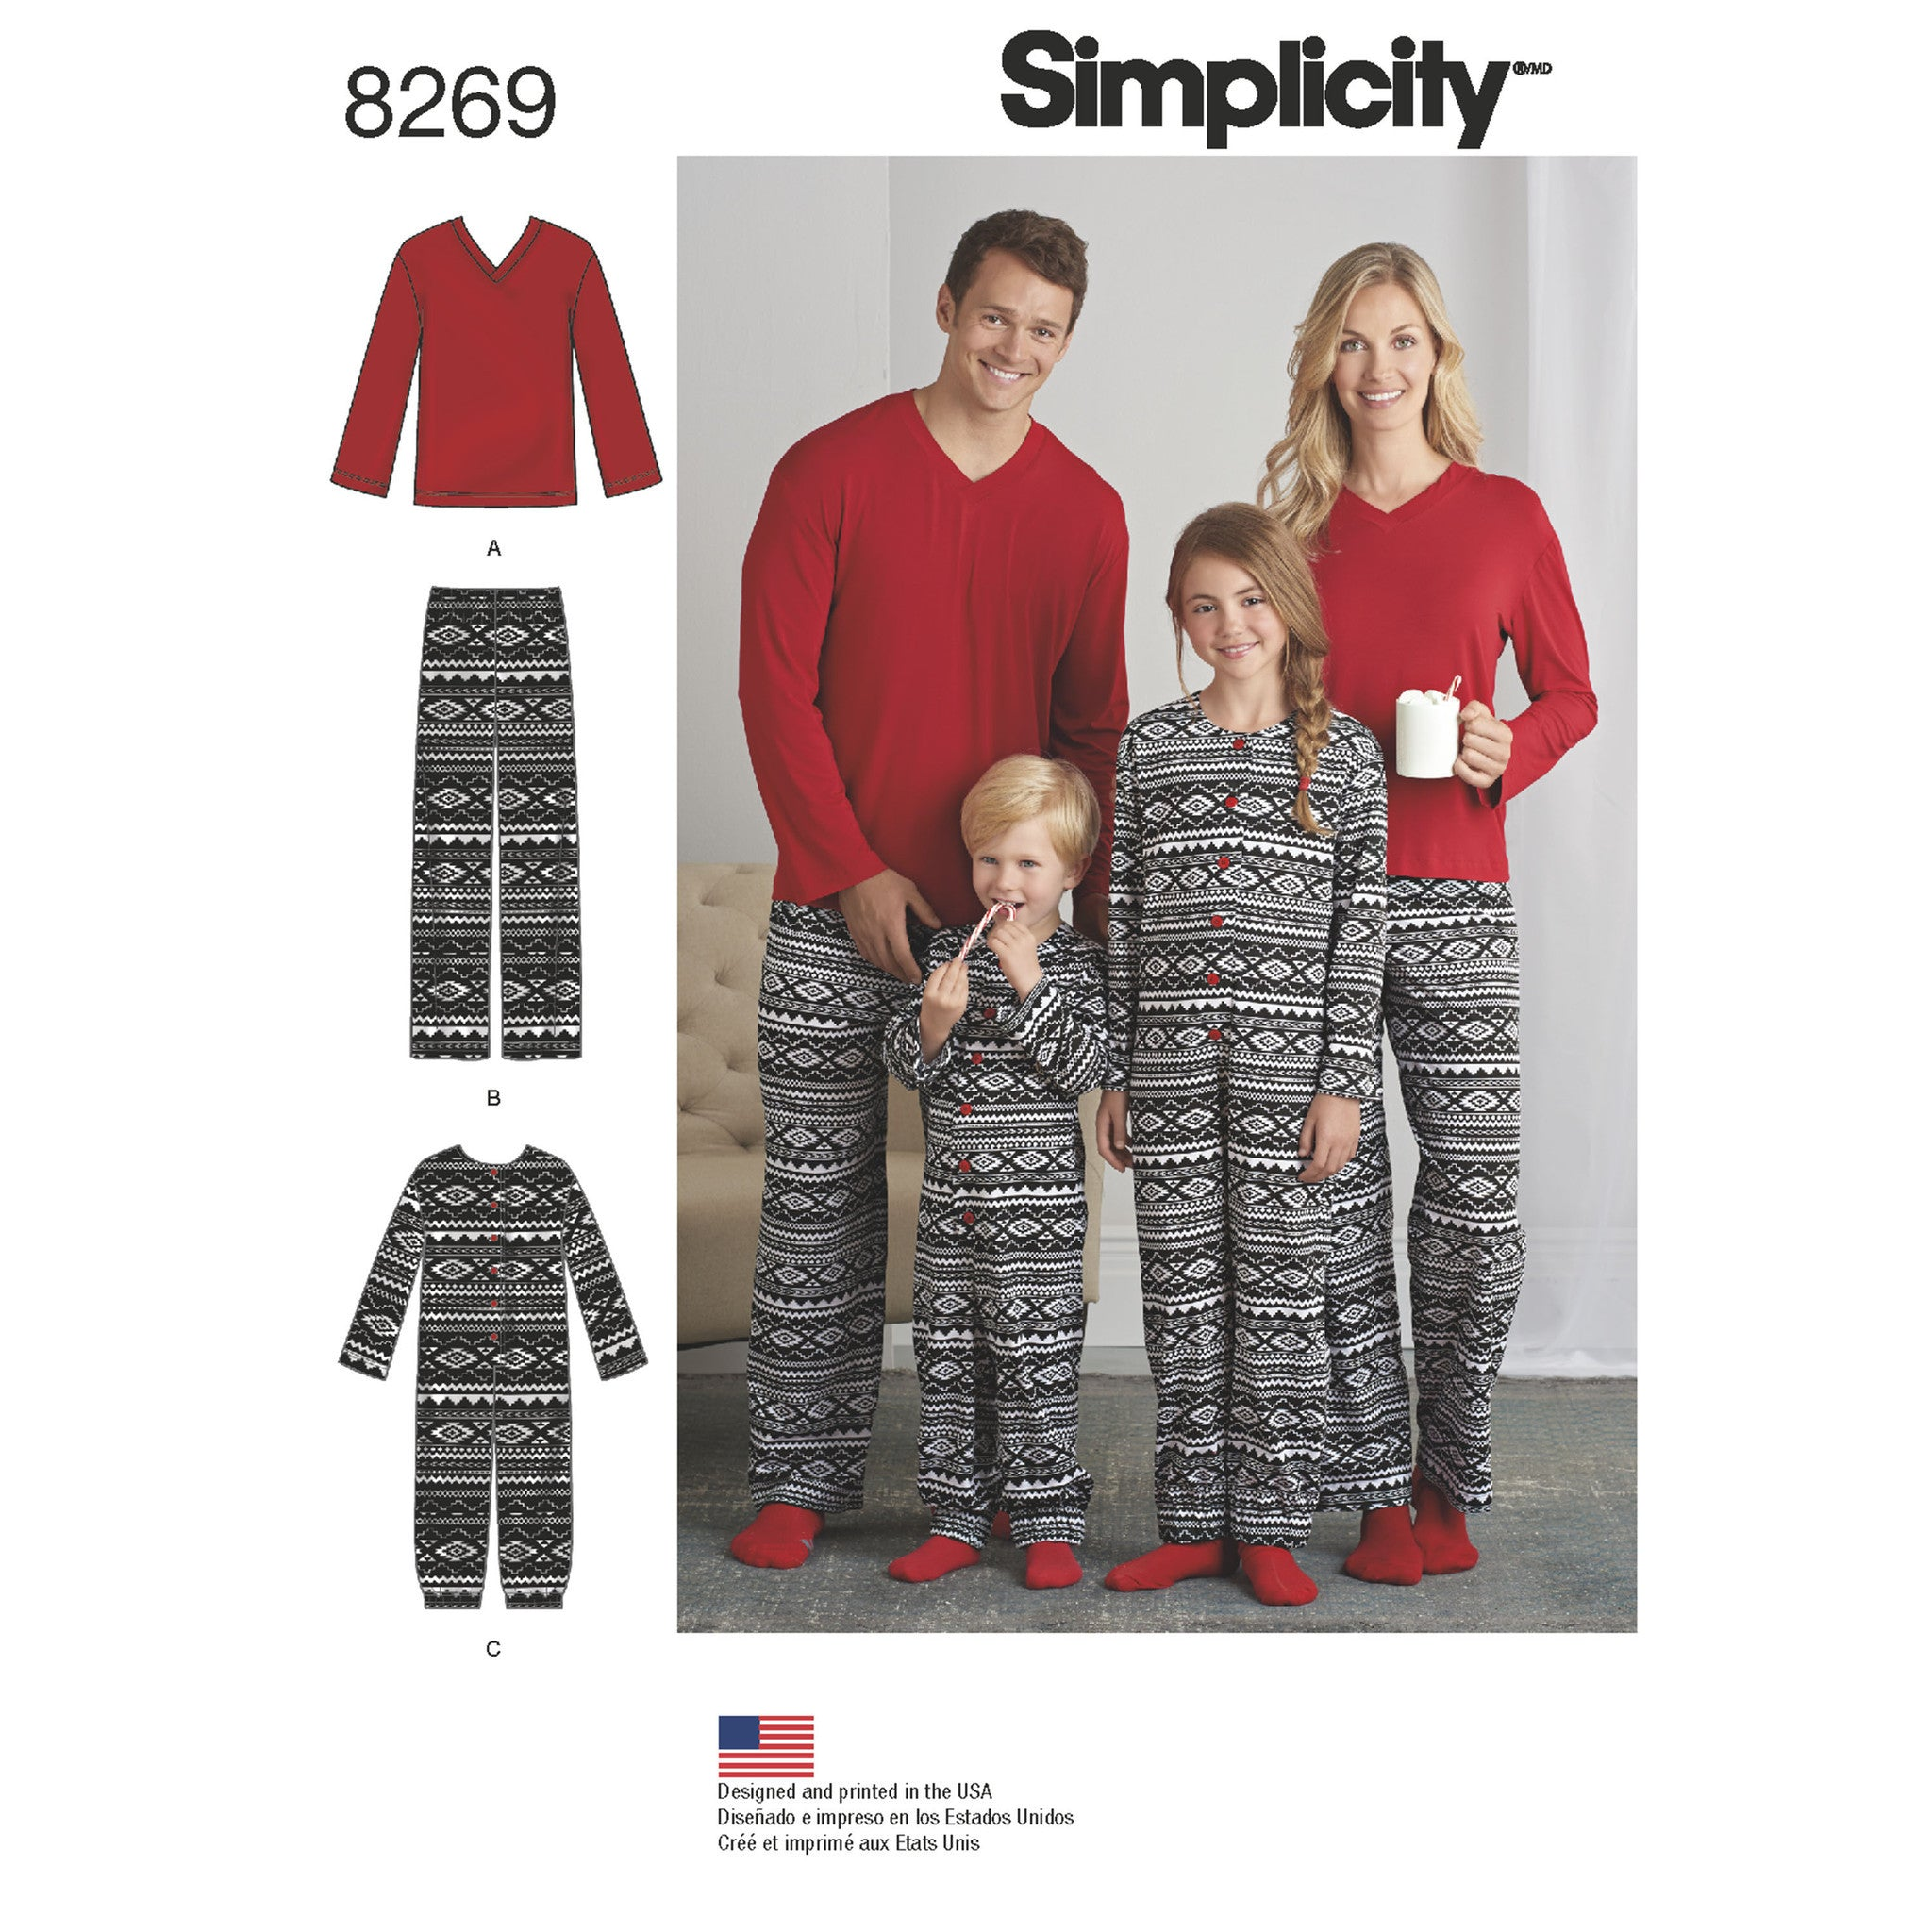 S8269 Child's Jumpsuit and Teens' / Adults' Pants and Knit Top